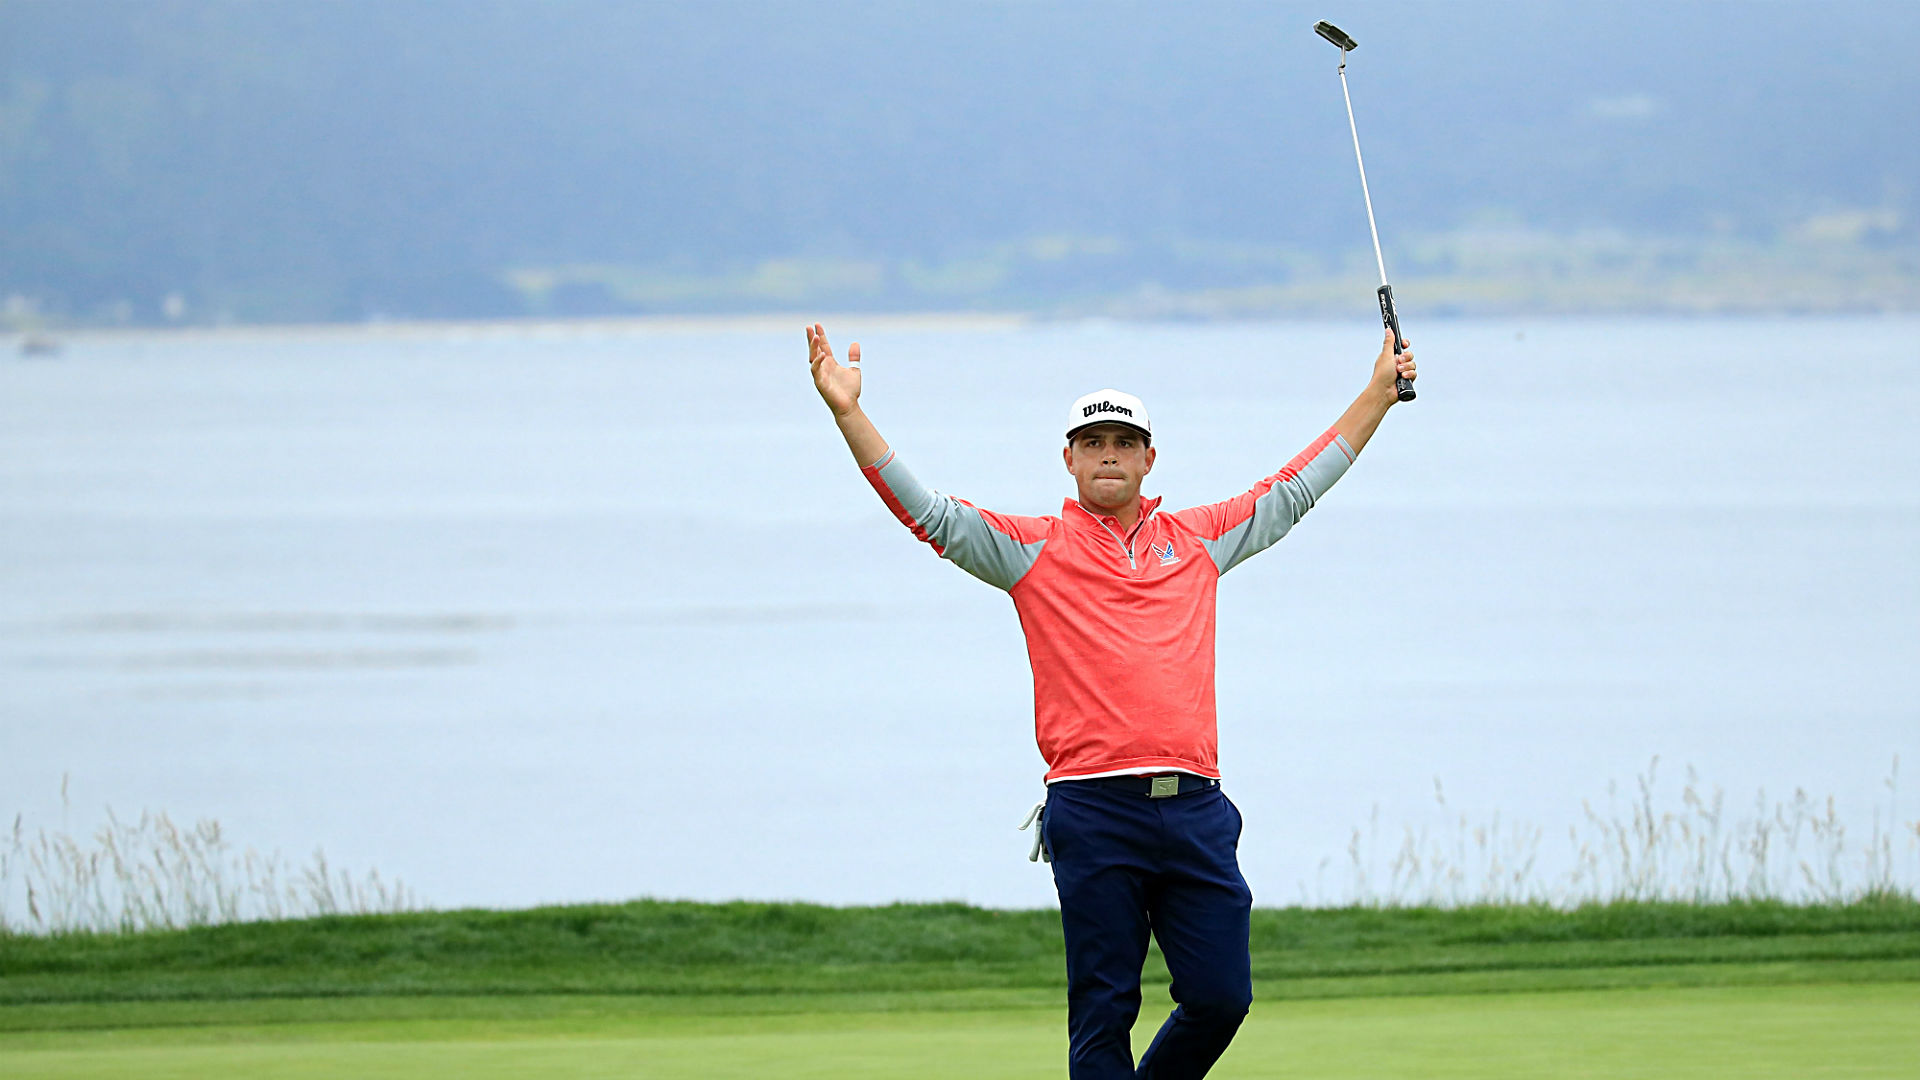 flipboard  u s  open results 2019  gary woodland wins at pebble beach for first career major victory